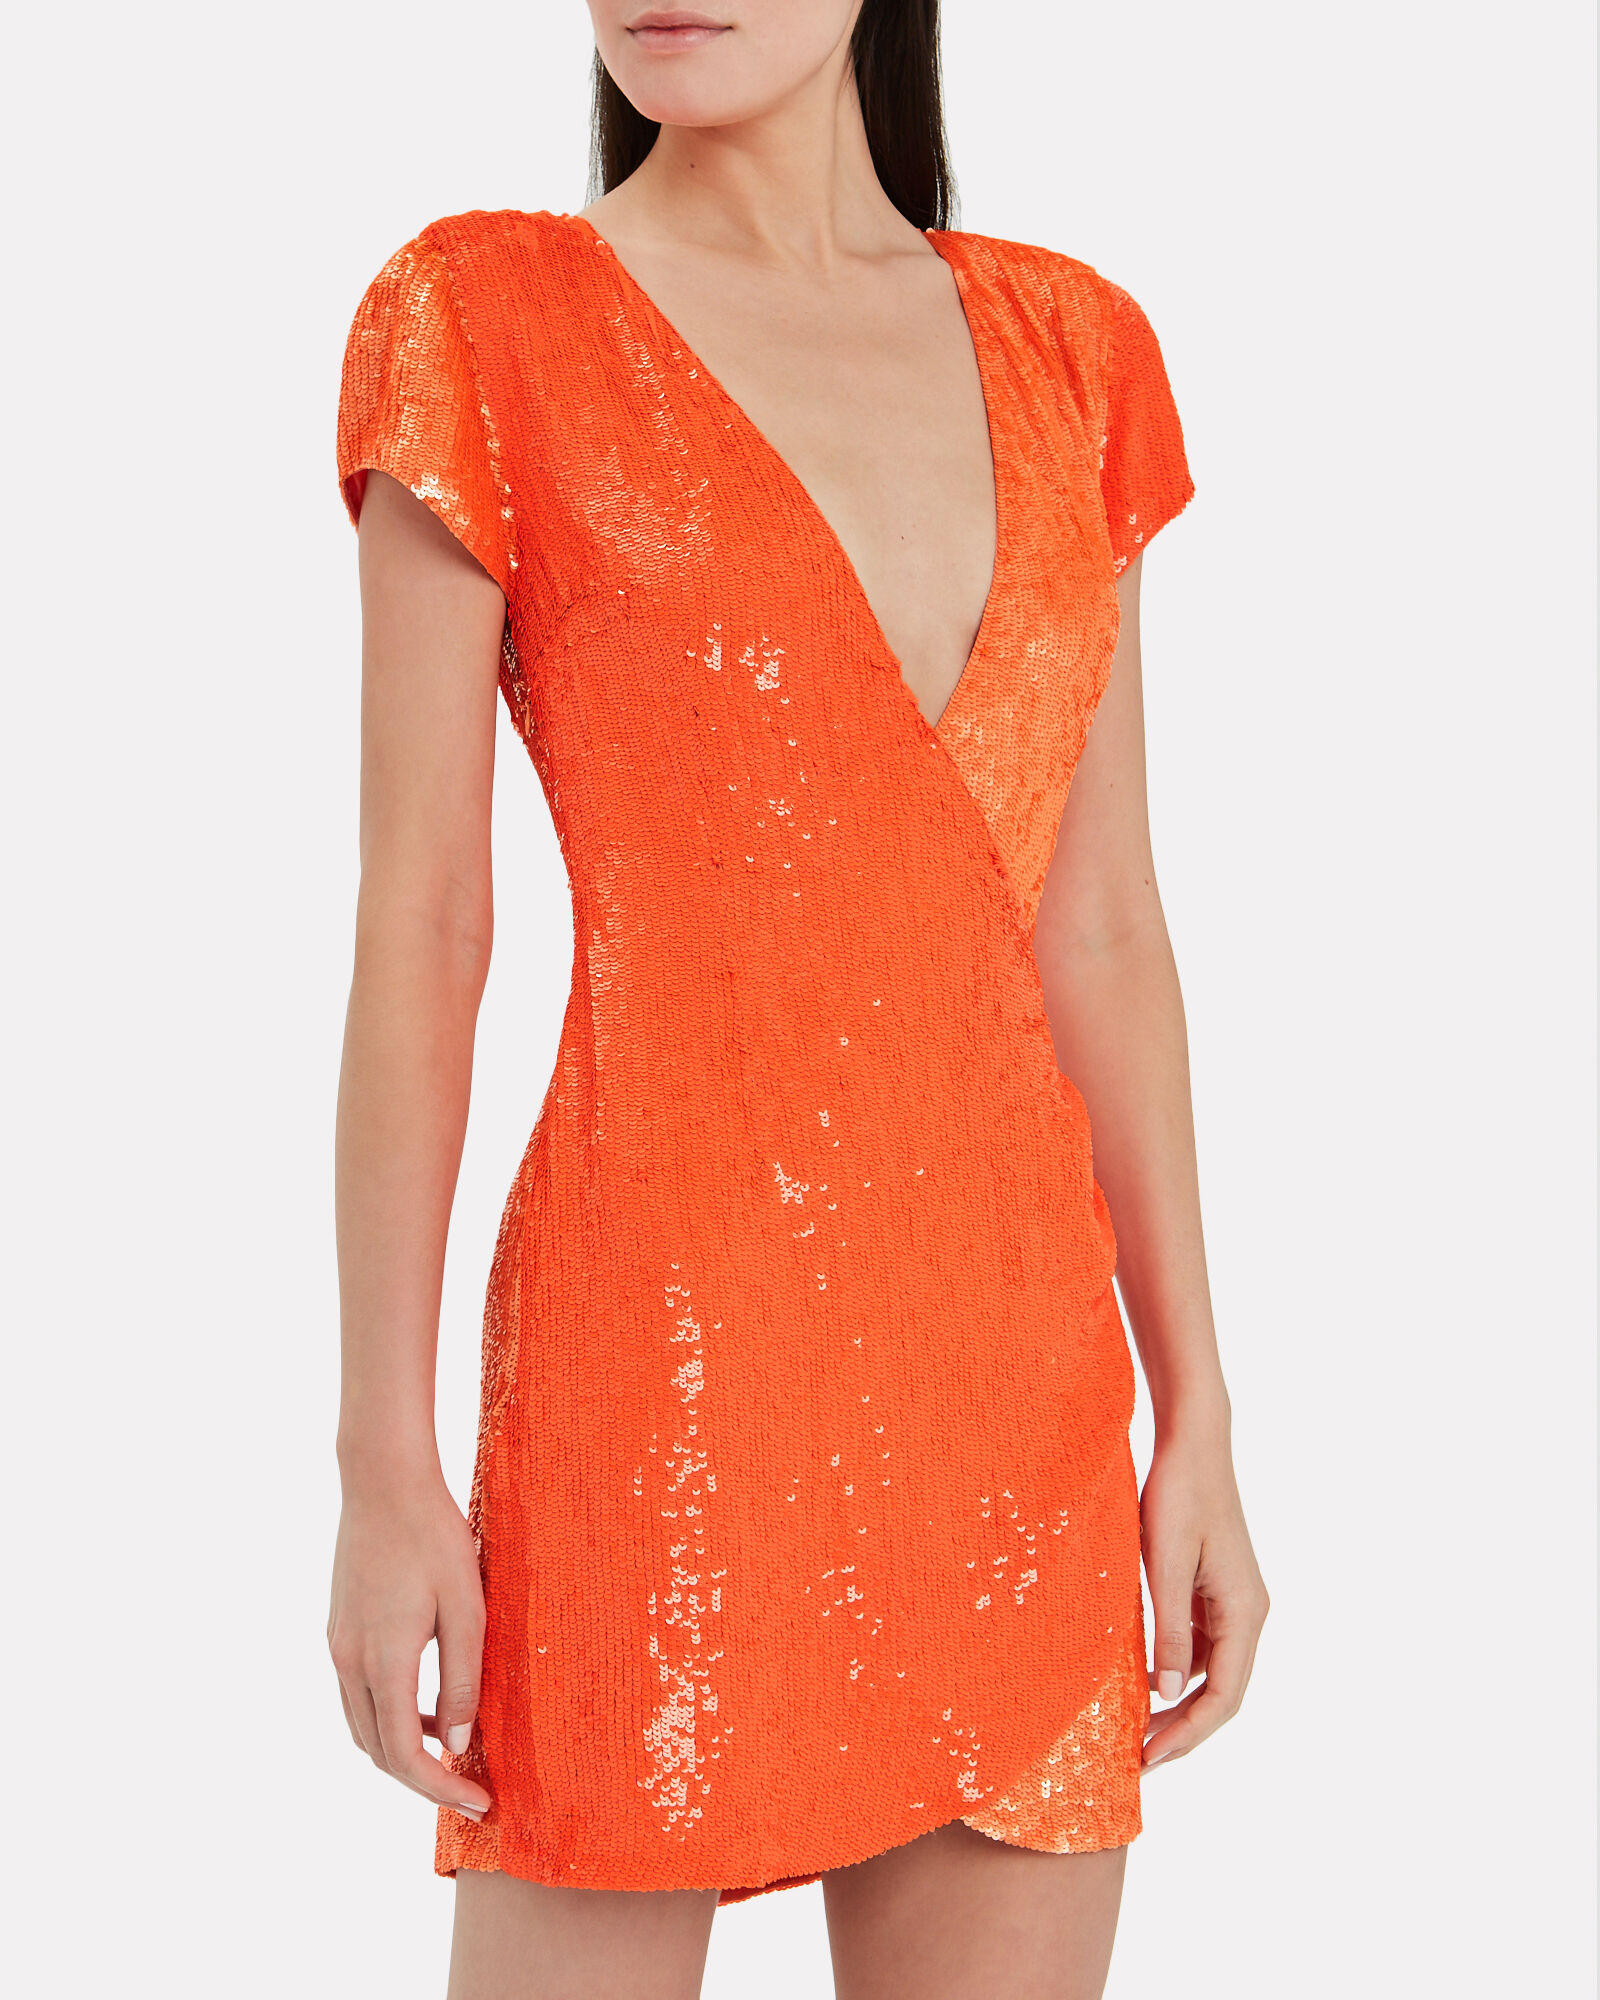 Olya Two-Tone Sequin Dress, ORANGE, hi-res